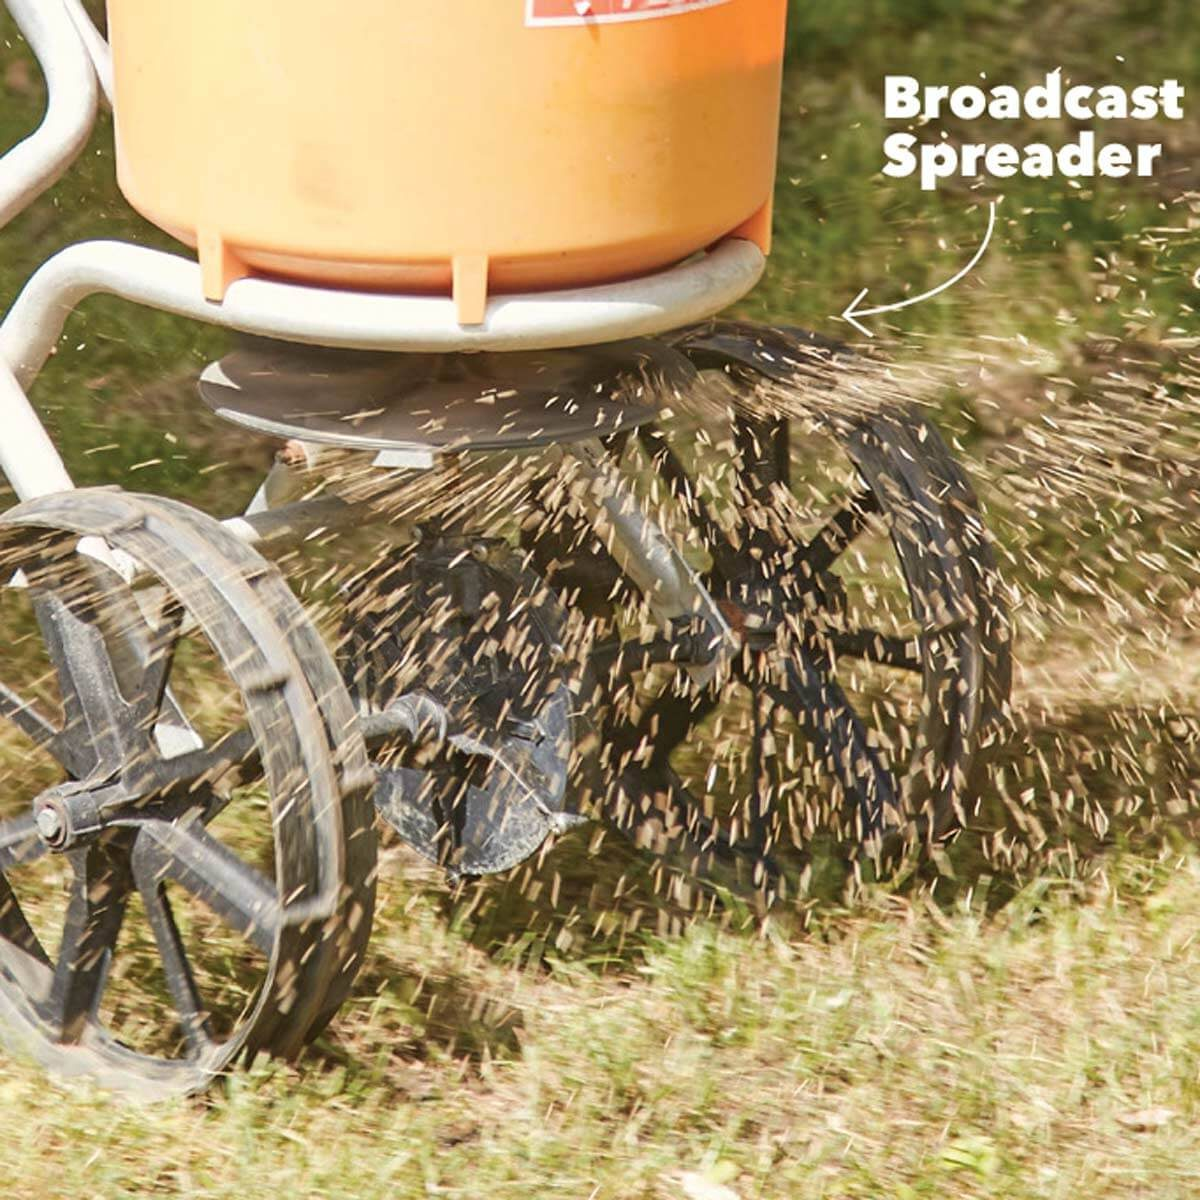 broadcast spreader